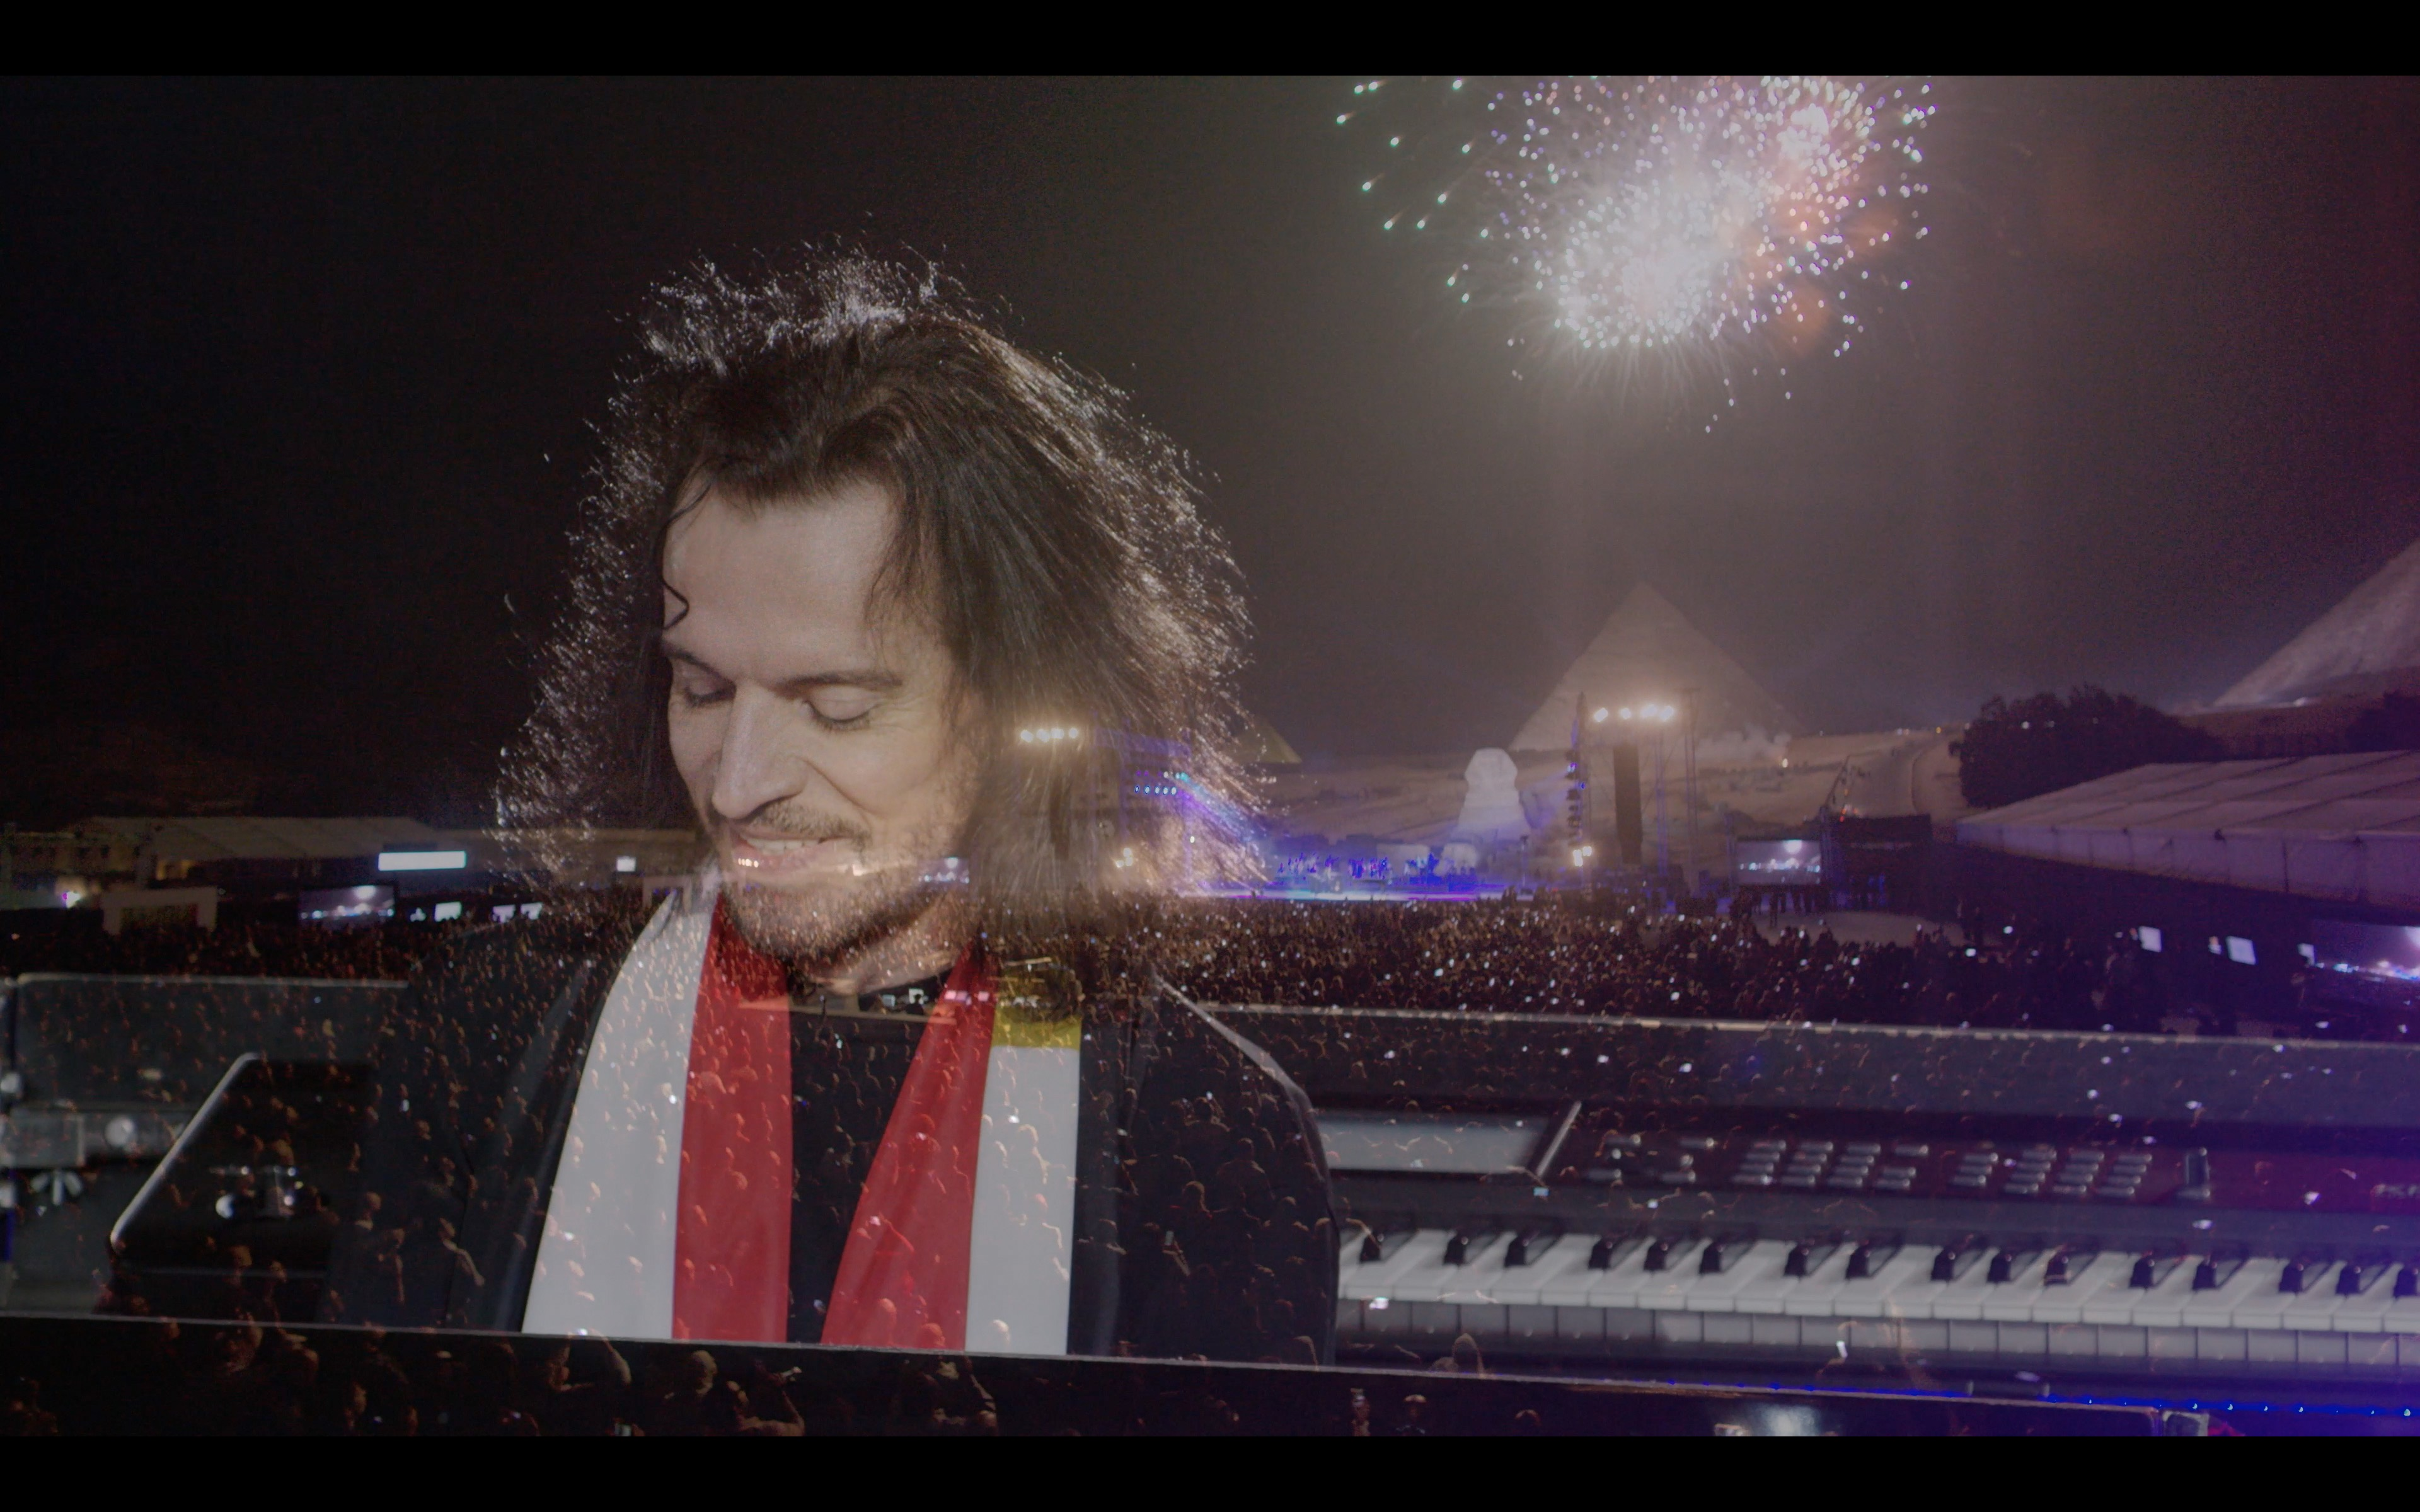 YANNI-THE DREAM CONCERT: LIVE FROM THE GREAT PYRAMIDS OF EGYPT